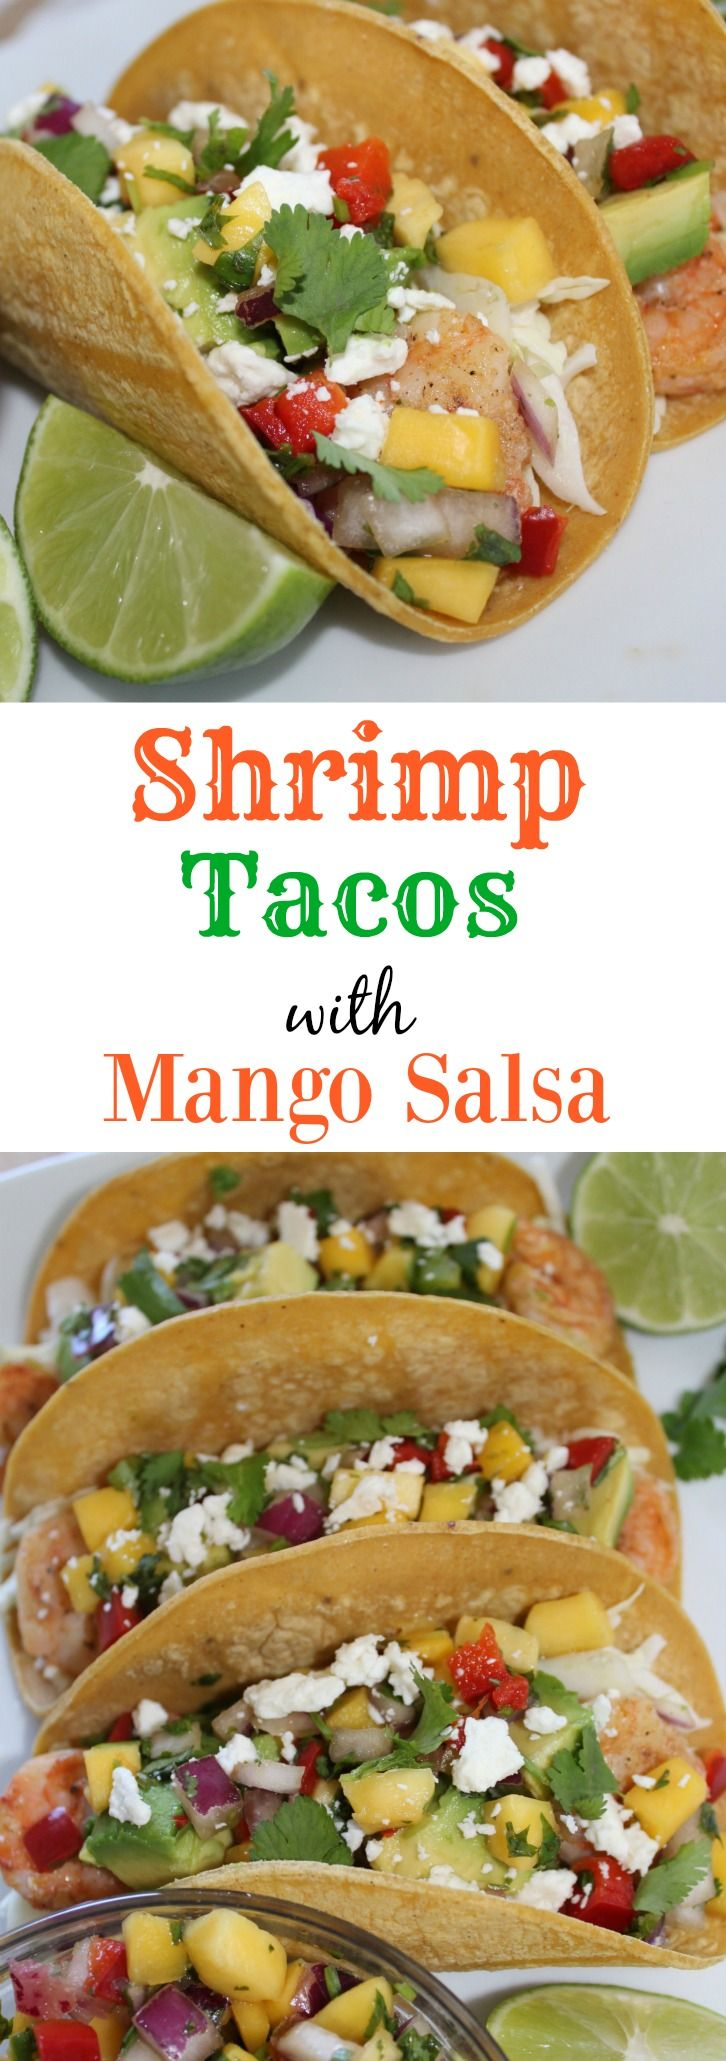 These simple Marinated Shrimp Tacos with Mango Salsa are a lighter take on a typical fish taco. Spiced shrimp loaded with shredded cabbage, avocado, fresh mango salsa and feta cheese. This is a delicious fresh and light meal for a lunch or dinner idea. I add a little hot sauce to make it extra spicy!